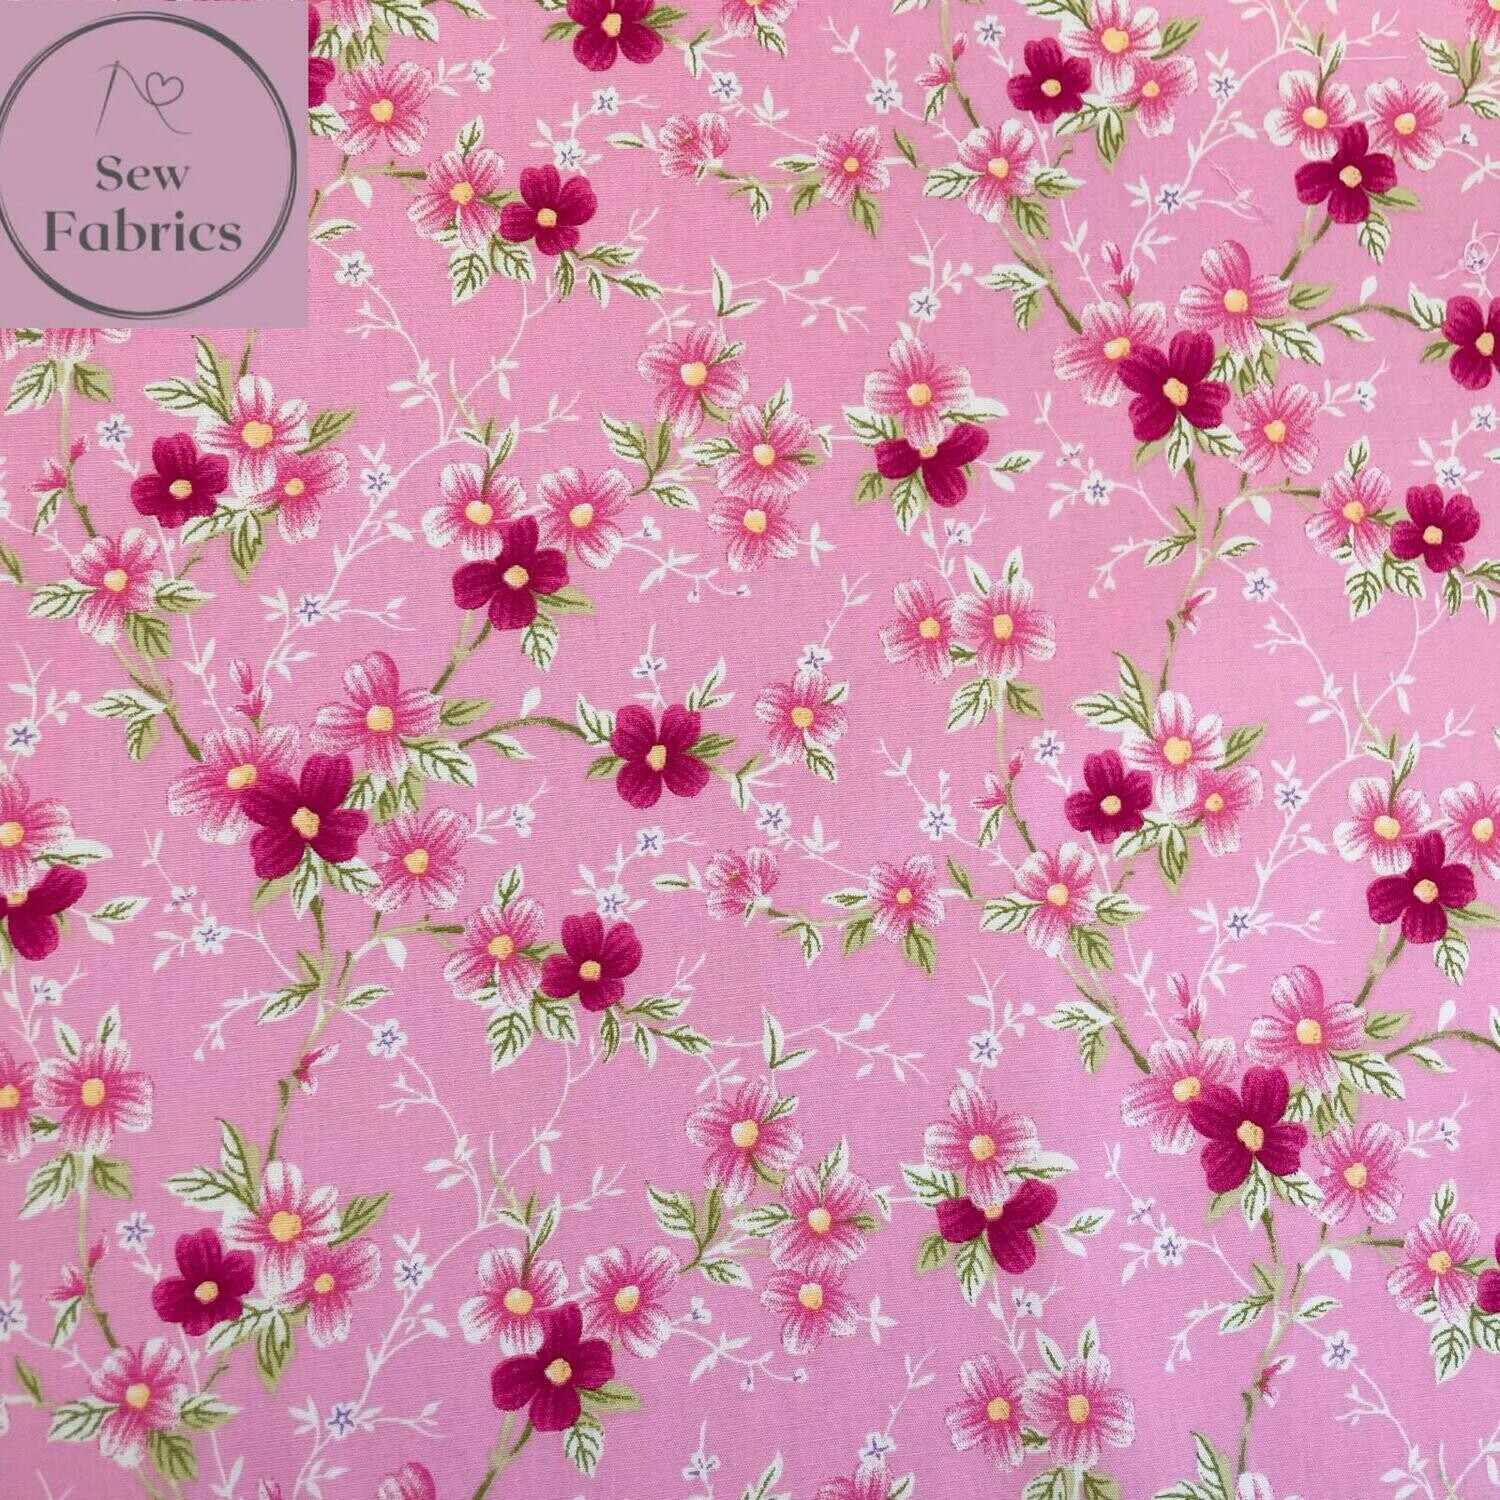 Rose & Hubble Pink Trailing Flowers Floral Fabric 100% Cotton Poplin, Flower Material